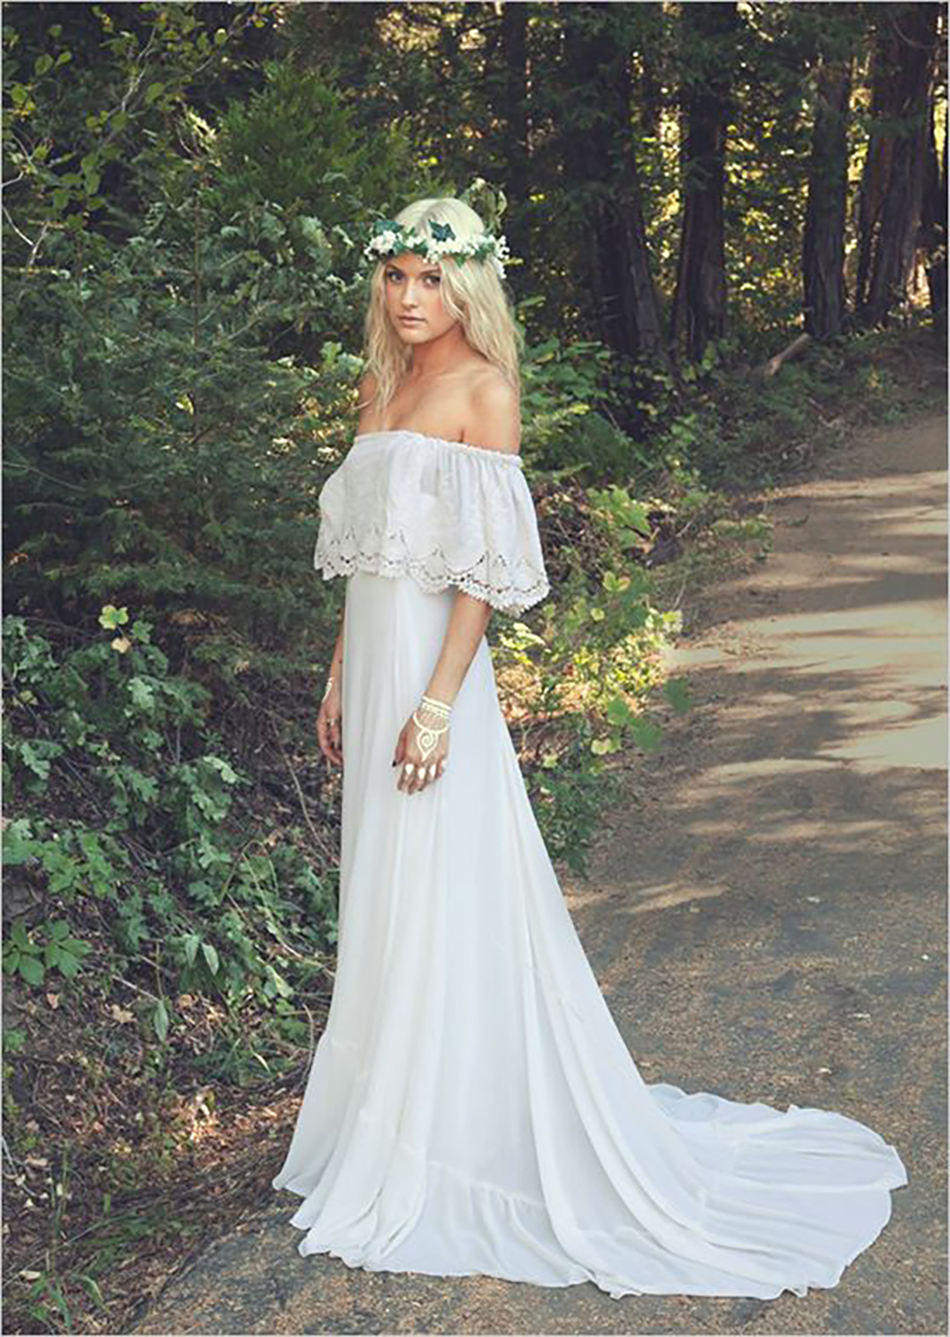 How to create the perfect Glastonbury inspired wedding - Dress | CHWV